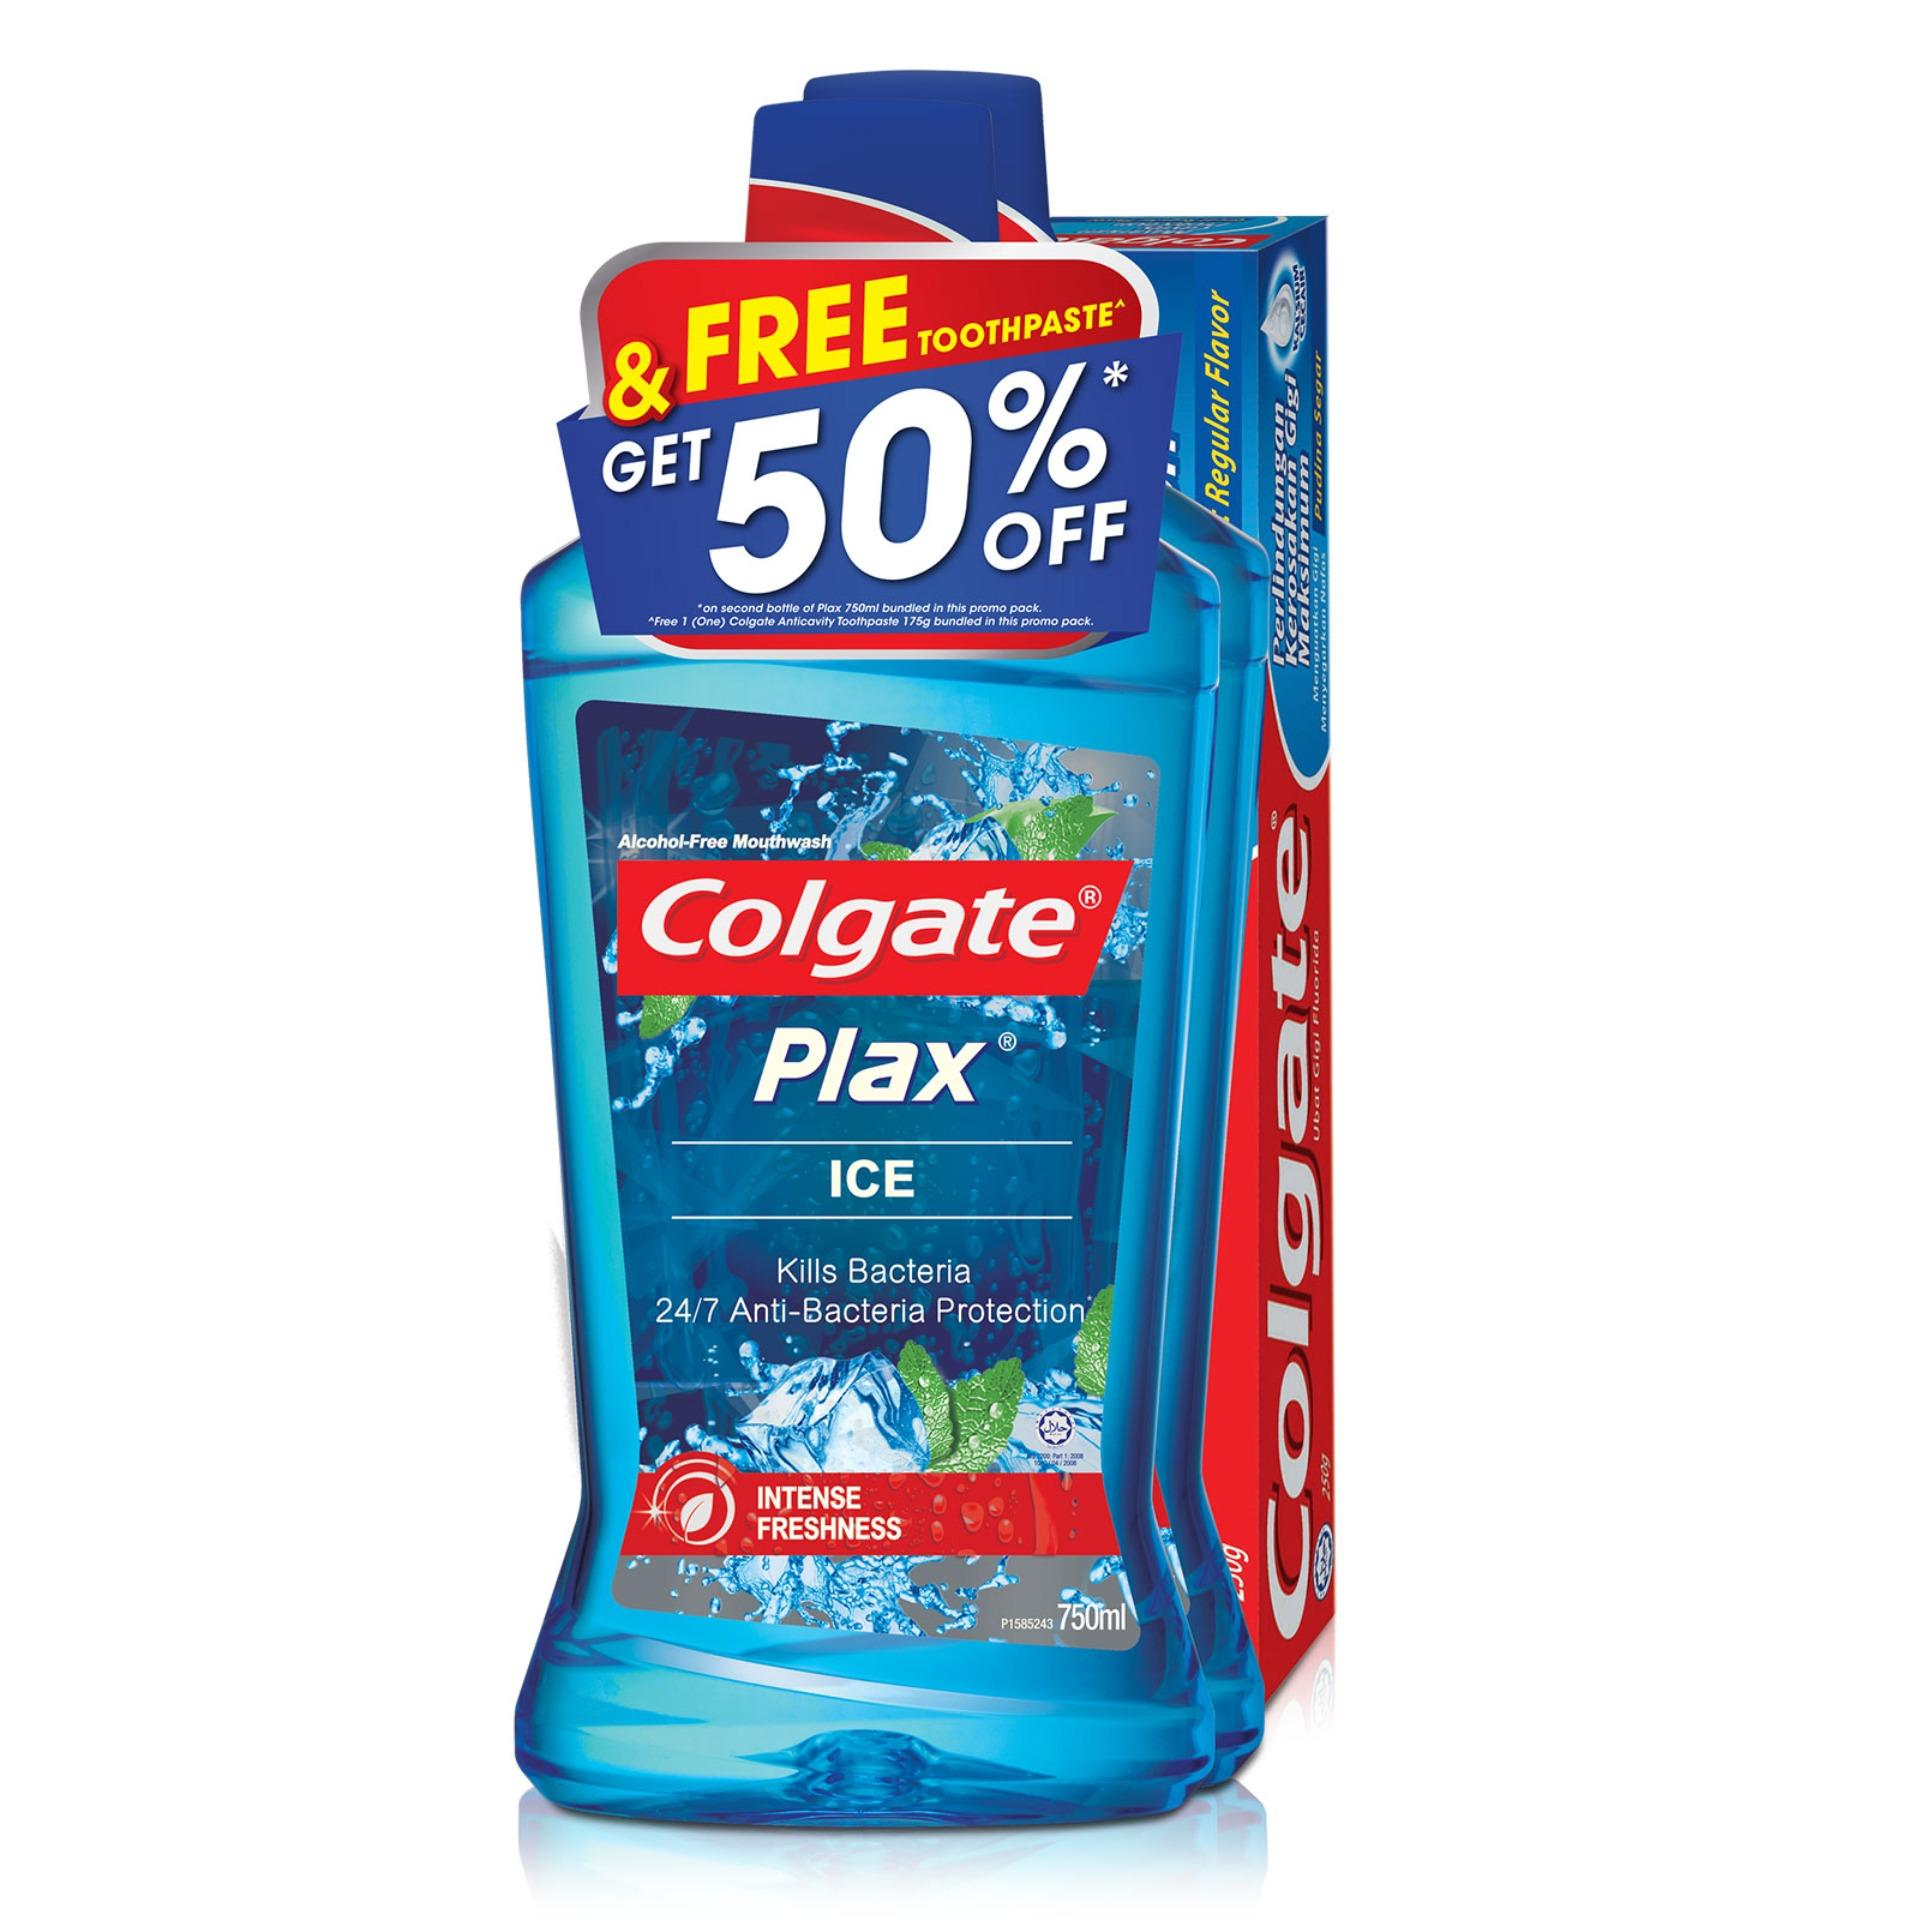 Sale Colgate Plax Ice Mouthwash 750Ml Twinpack Free Colgate 175G Toothpaste Colgate On Singapore